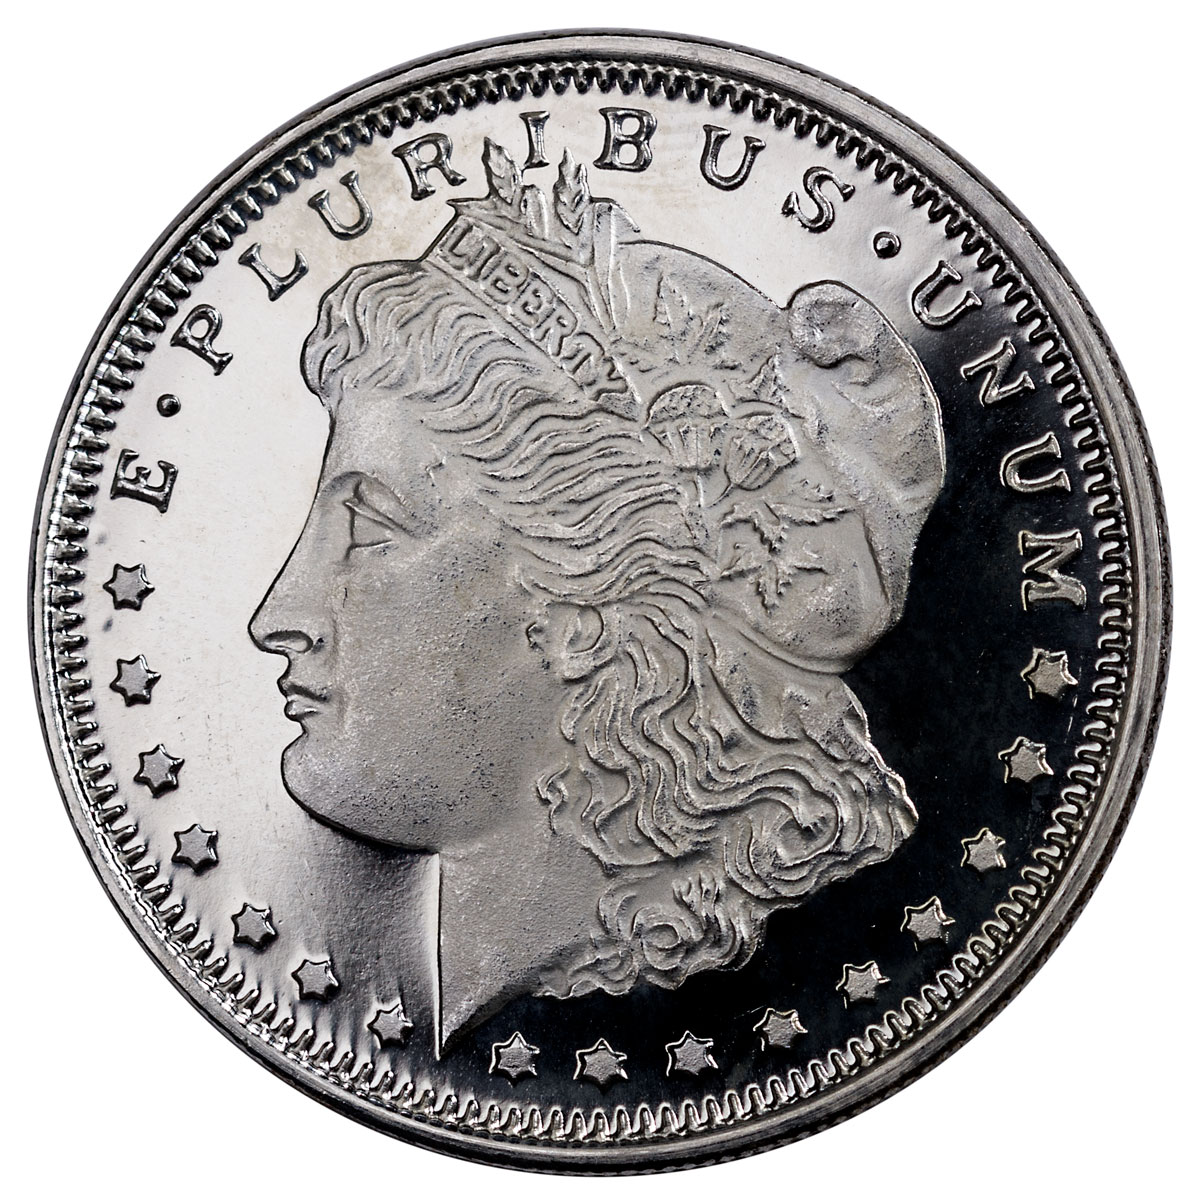 Highland Mint Morgan Dollar Design 1 2 Oz Silver Round